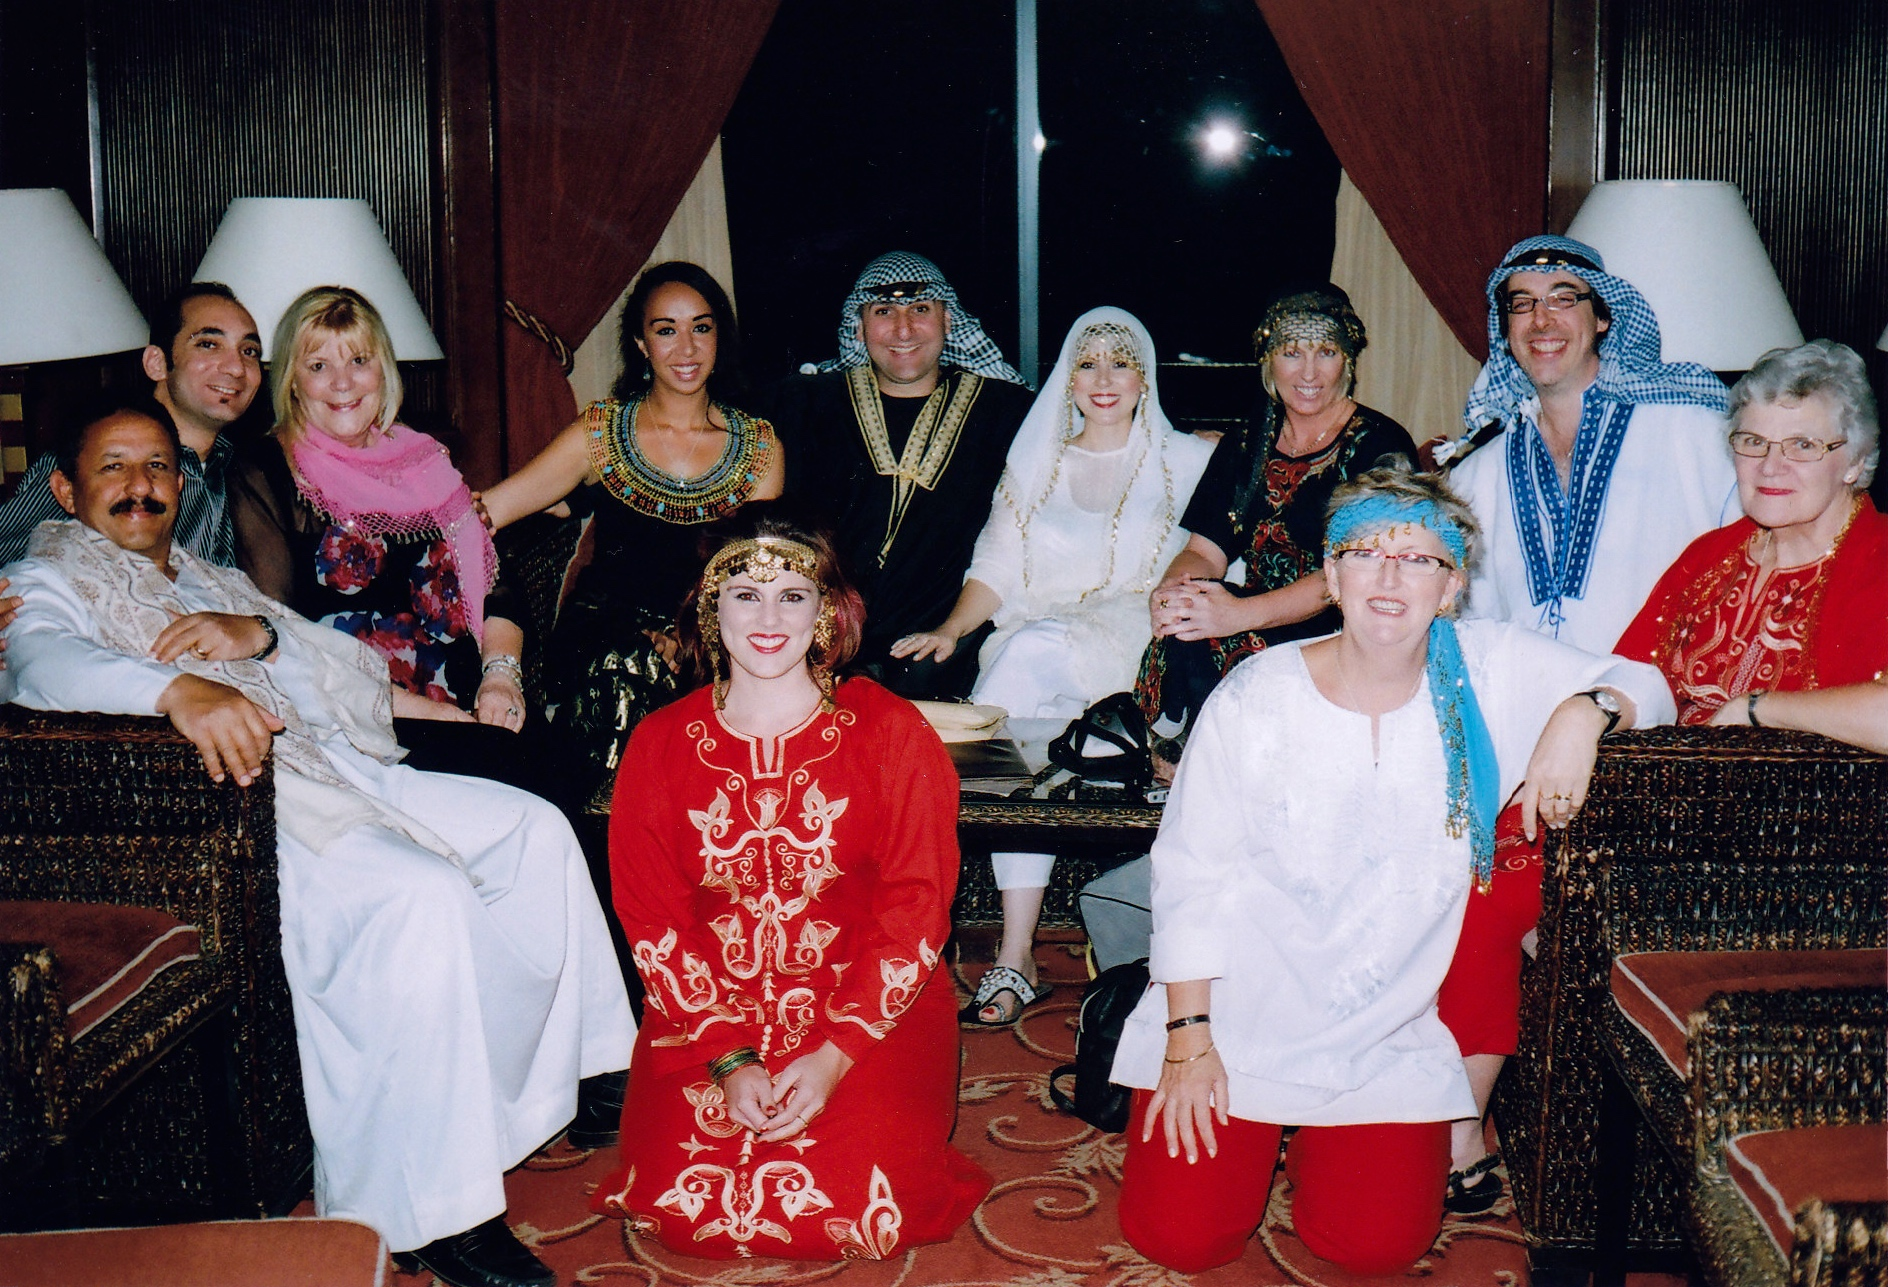 January 2010 Group enjoying Galabeya night on board Nile Cruise